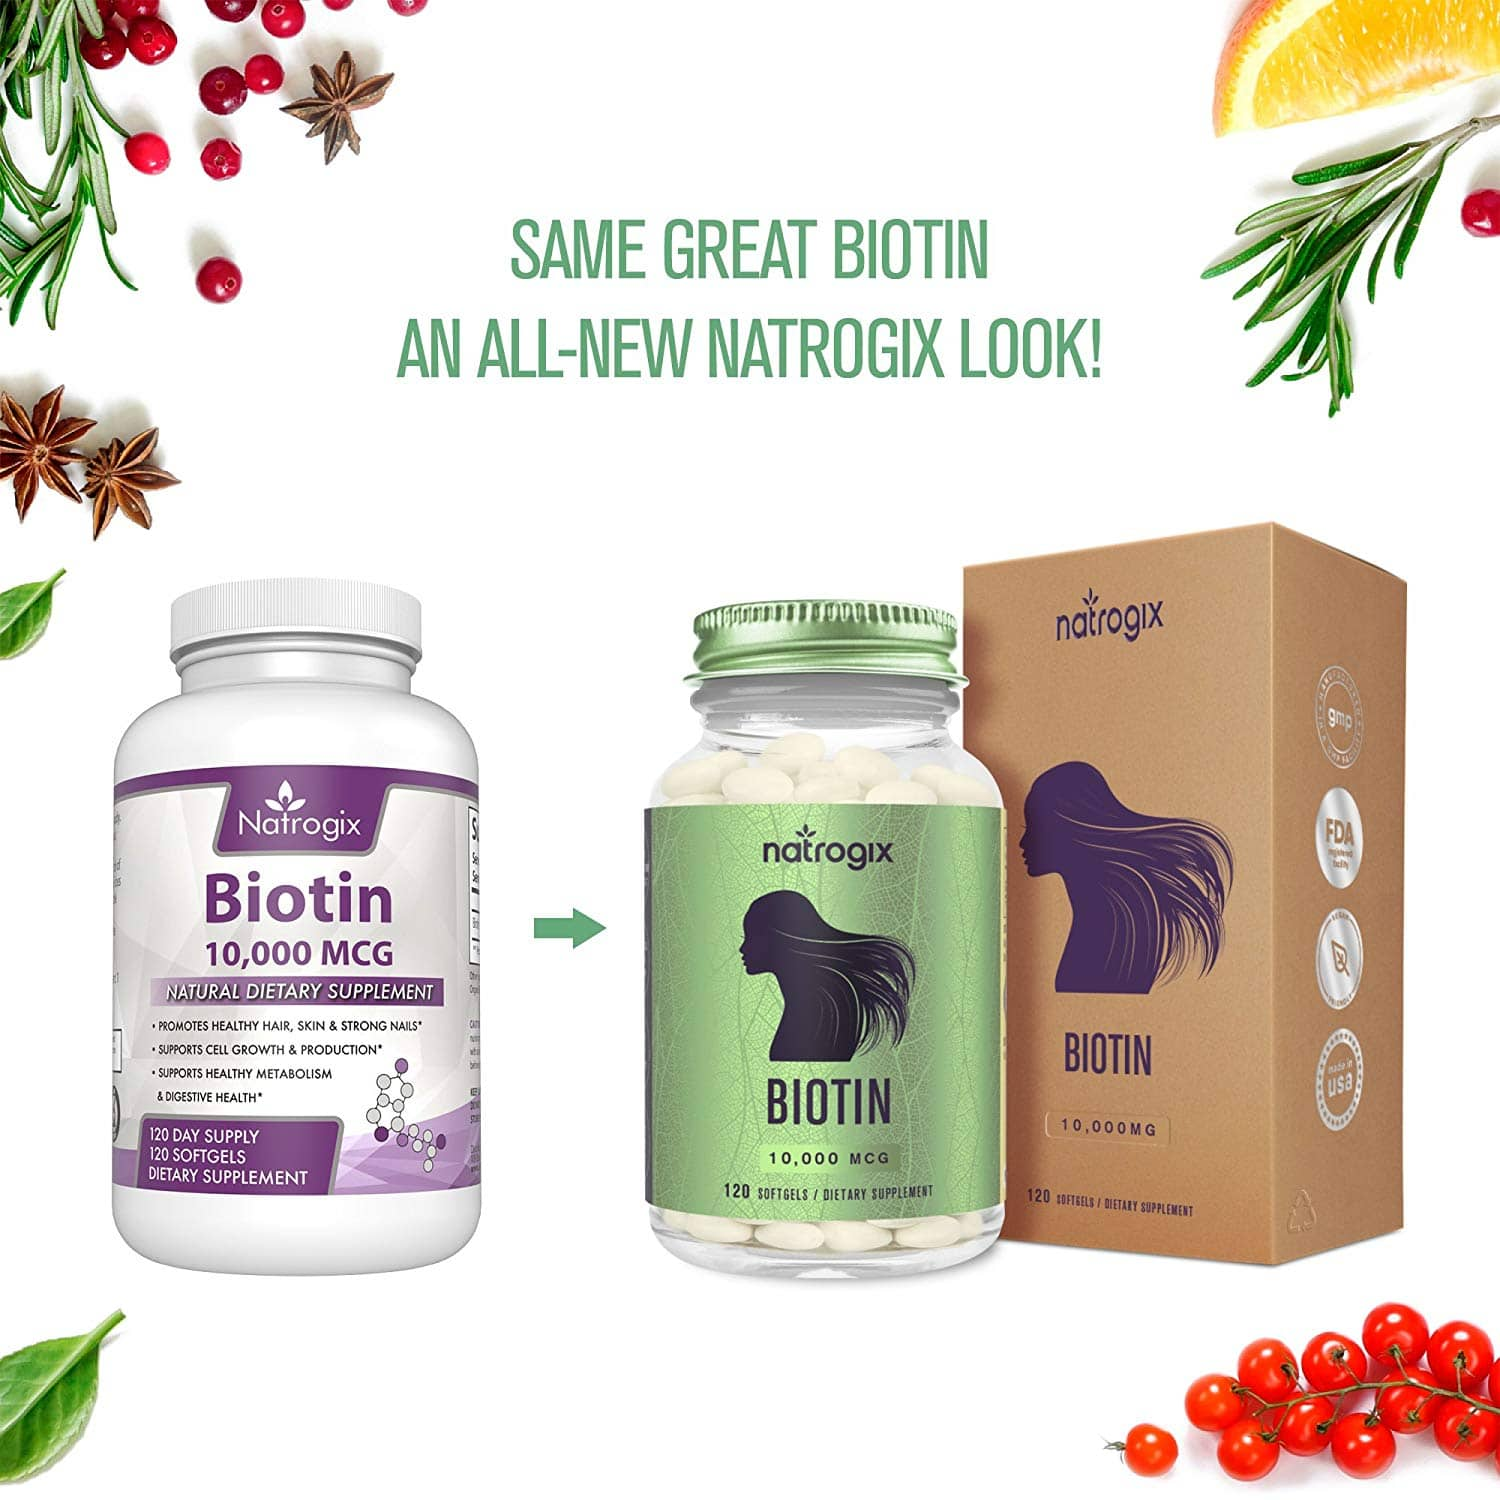 Biotin High Potency 10000 Mcg Per Veggie Softgel by Natrogix - Hair Loss Product Supports Hair Growth, Glowing Skin and Strong Nails - 120 Mini $8.49